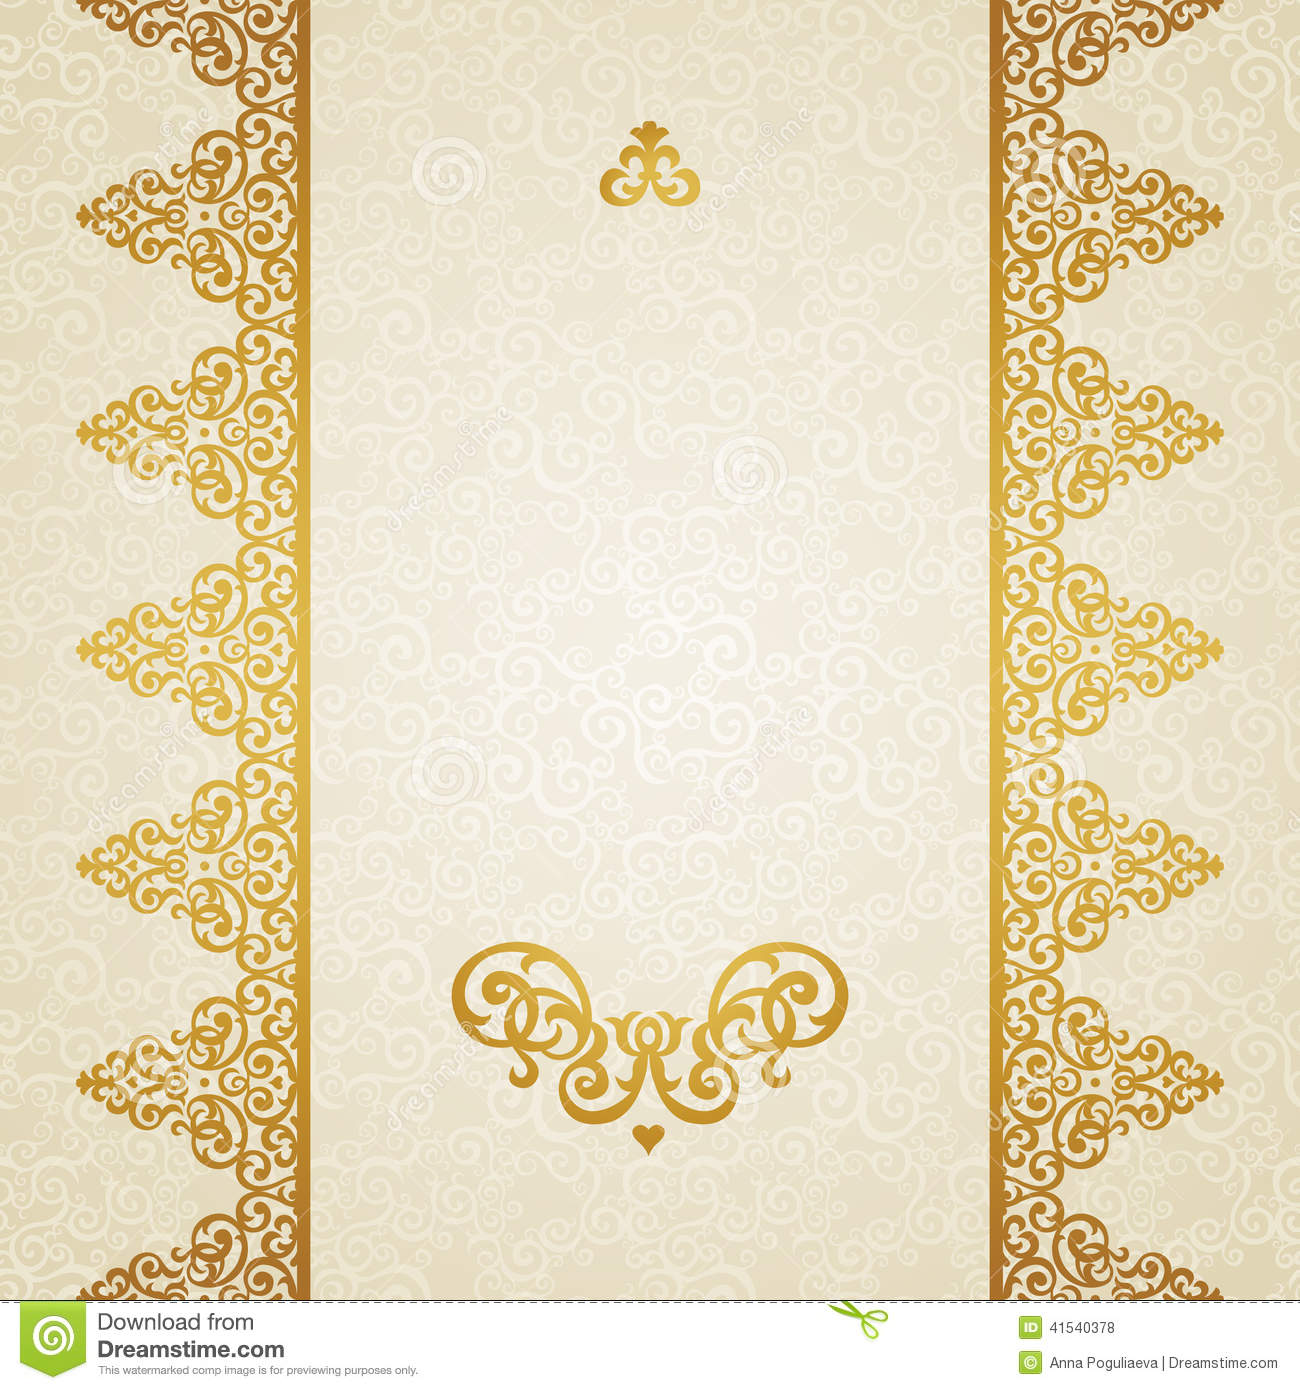 Vector Ornate Border In Victorian Style Stock Vector